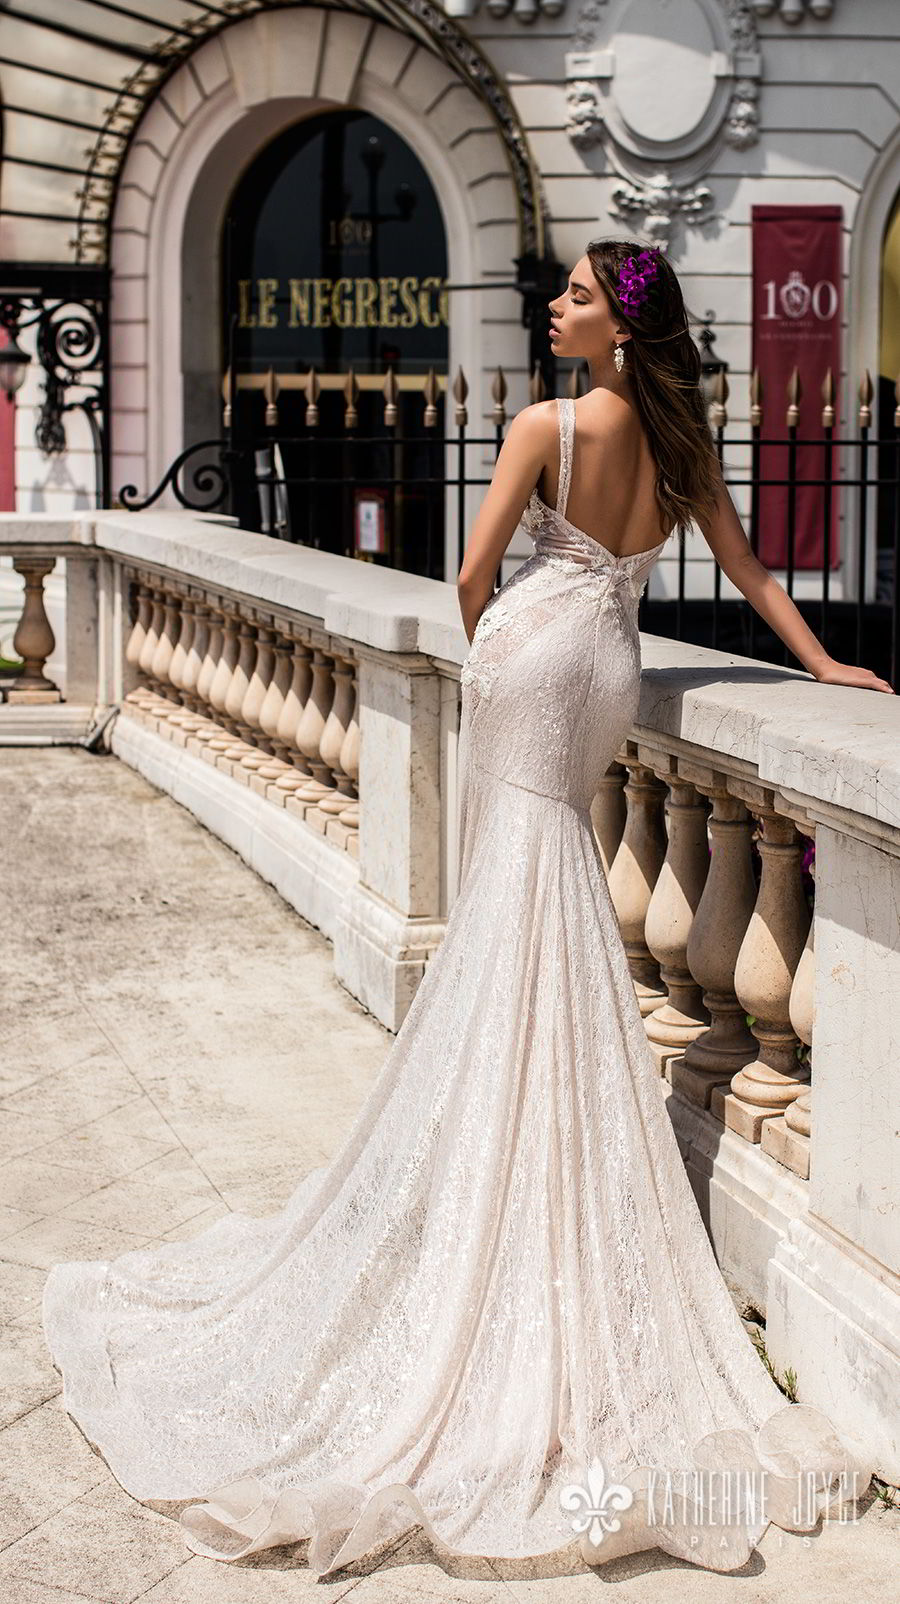 katherine joyce 2018 bridal sleeveless illusion bateau deep v neck full embellishment elegant sexy fit and flare wedding dress open back chapel train (alisiya) bv